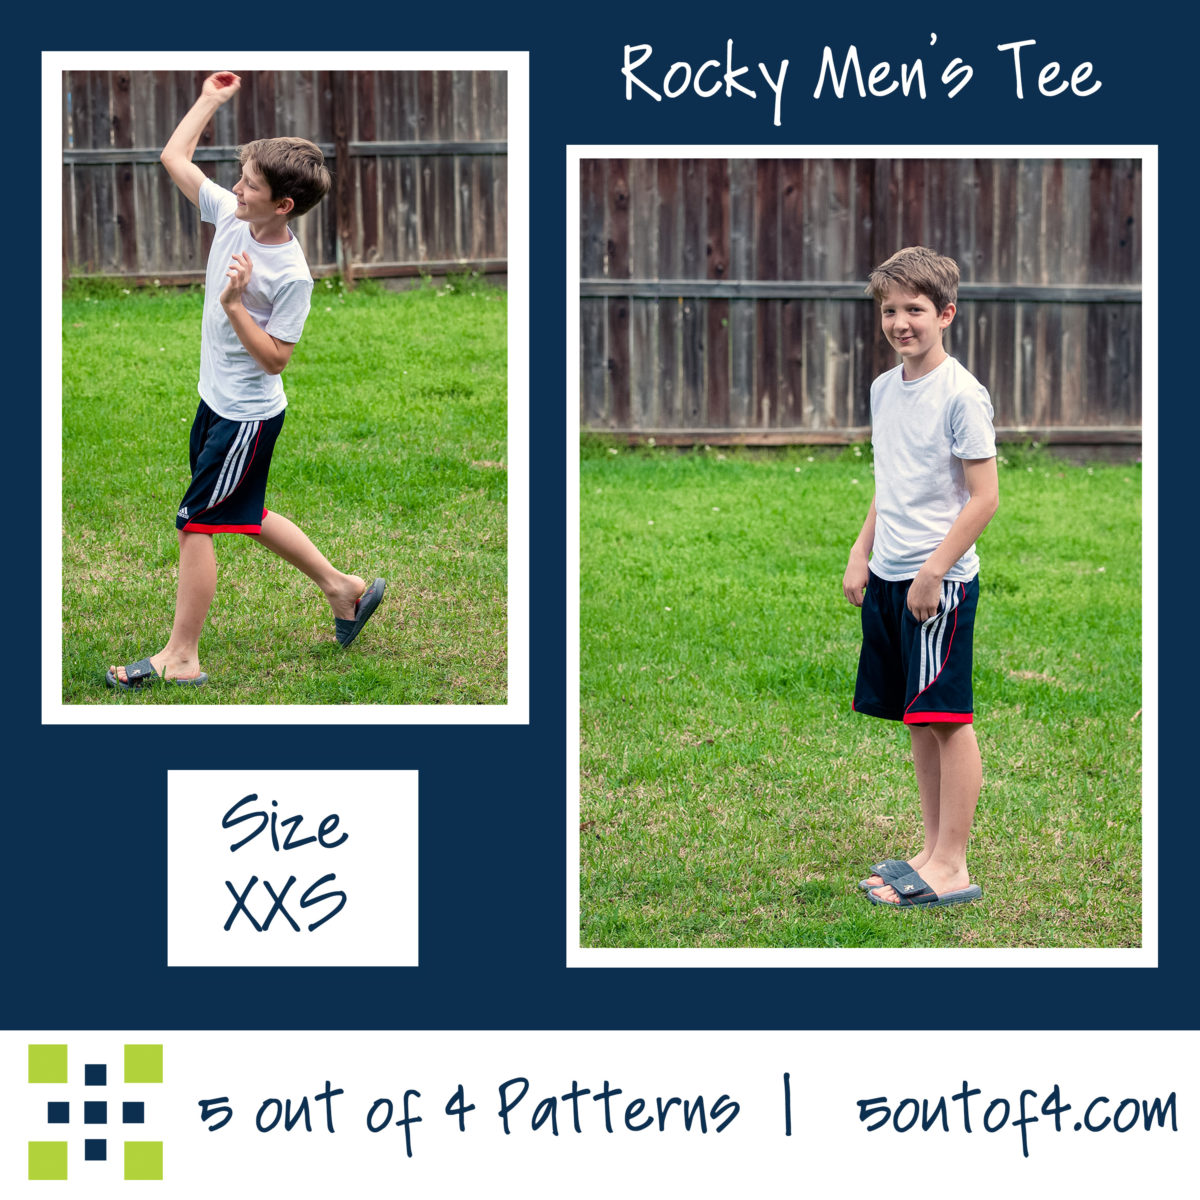 5oo4 Men's Rocky Semi-fitted Tee sz XXS short sleeves